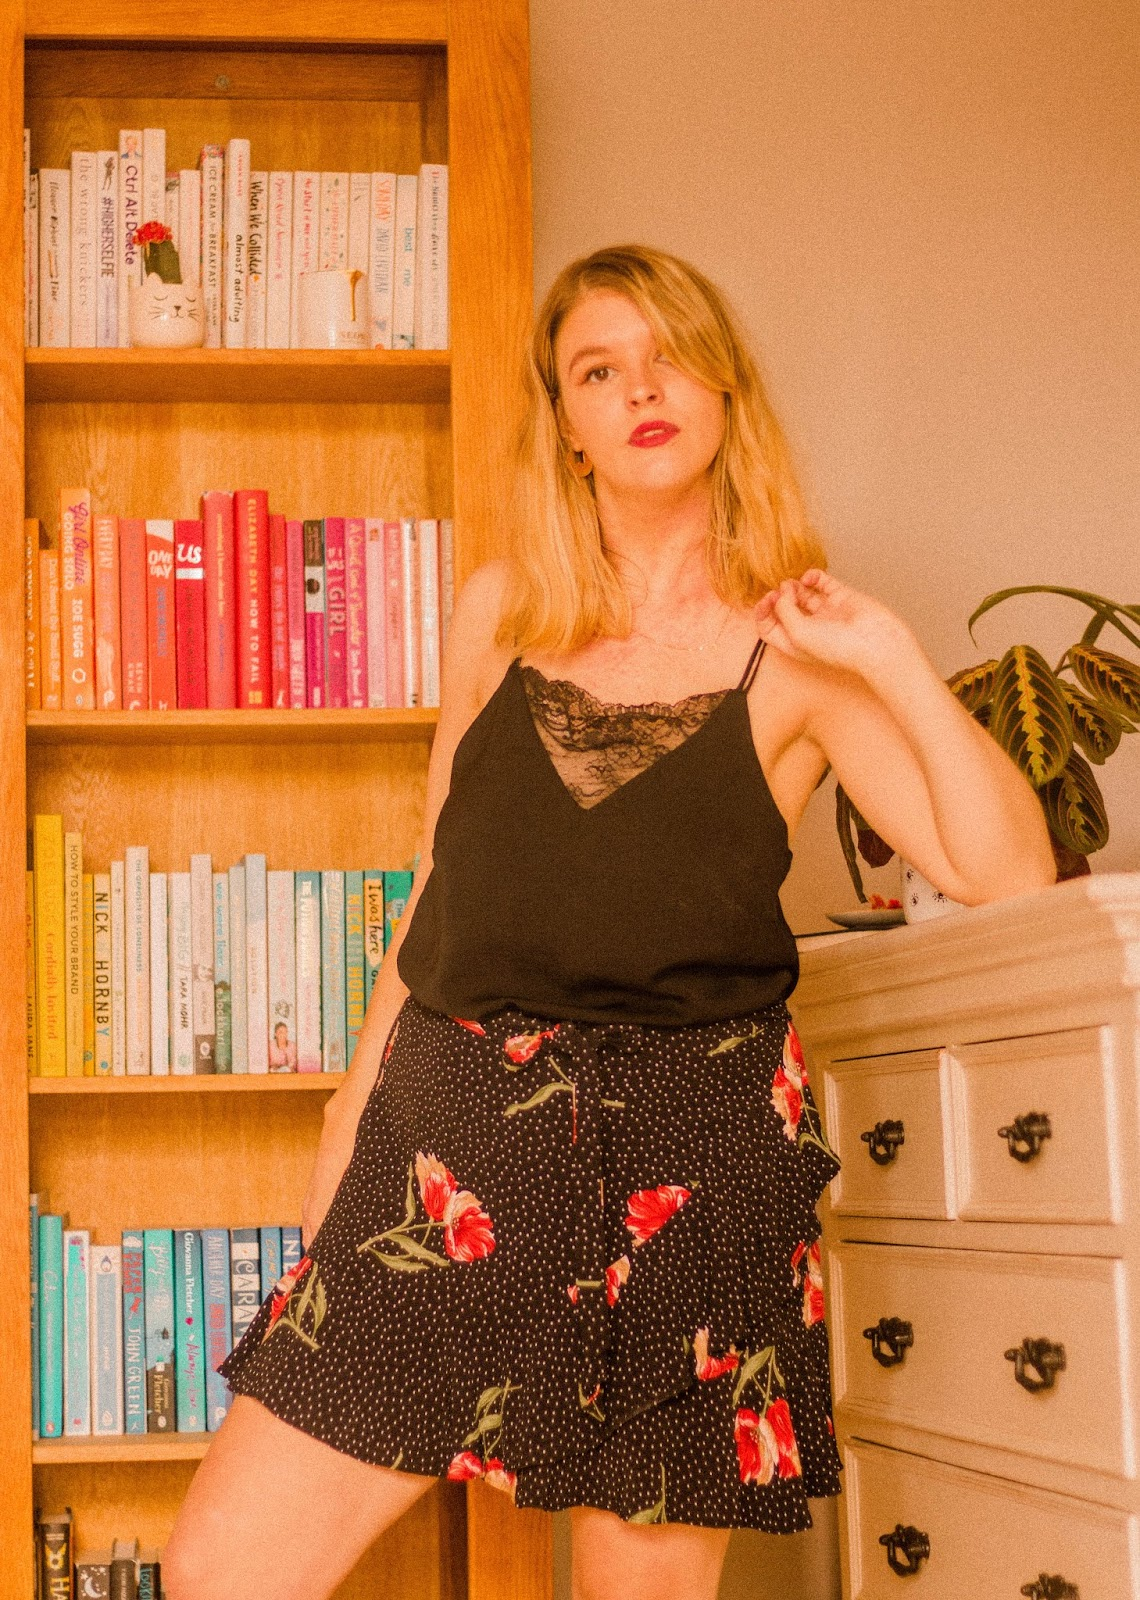 blonde girl with red lip stood in front of book shelf full of colourful books